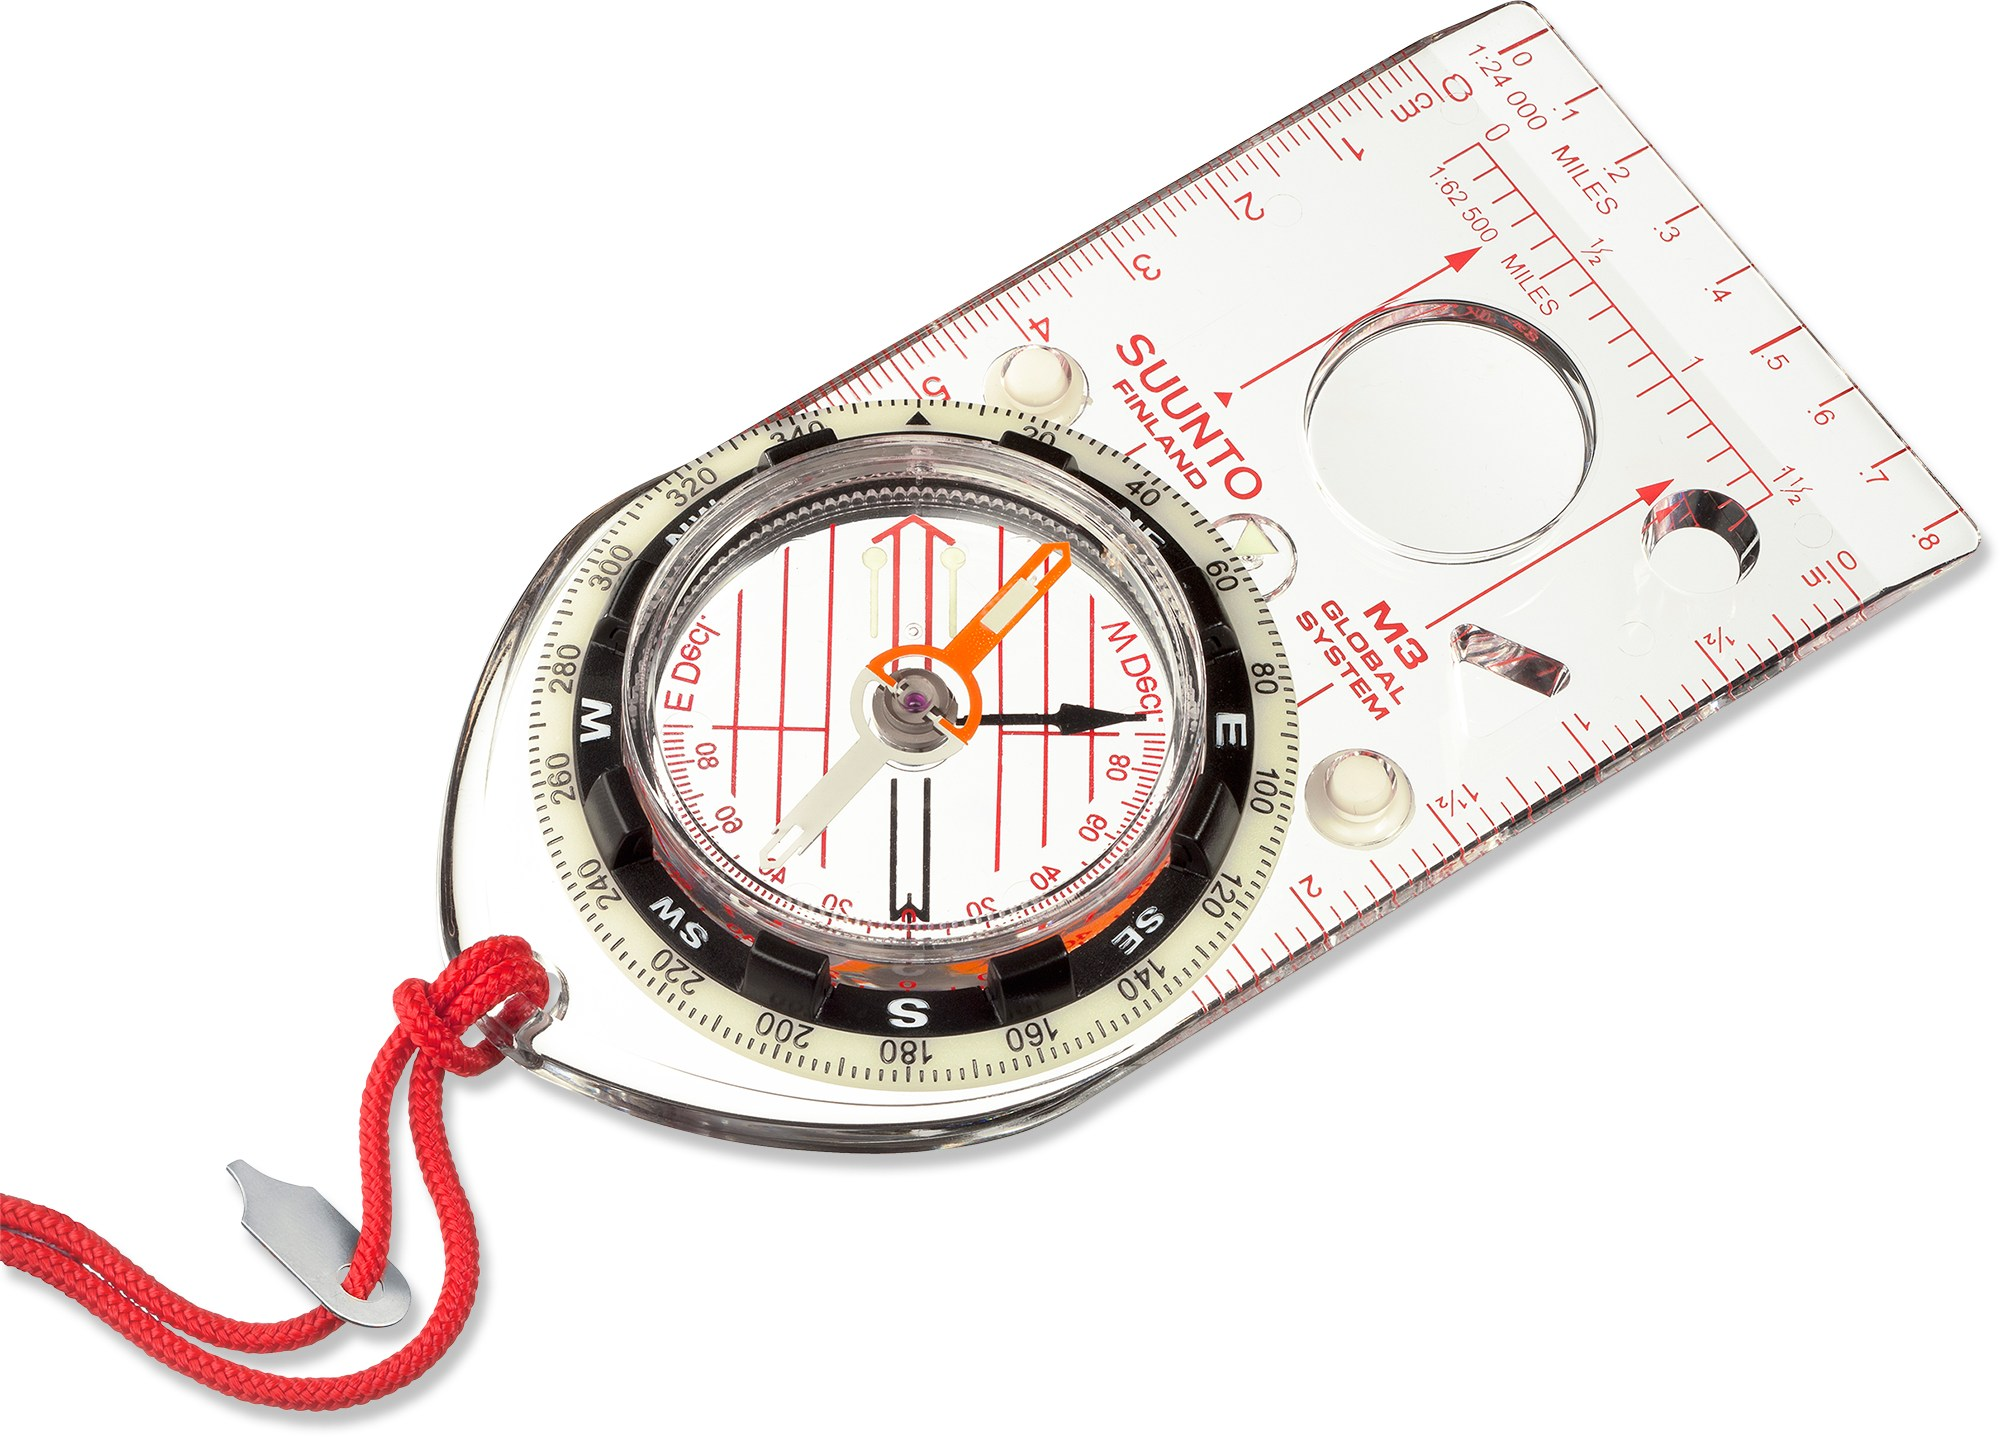 A full-featured compass, like this one from Suunto, is a solid bet.